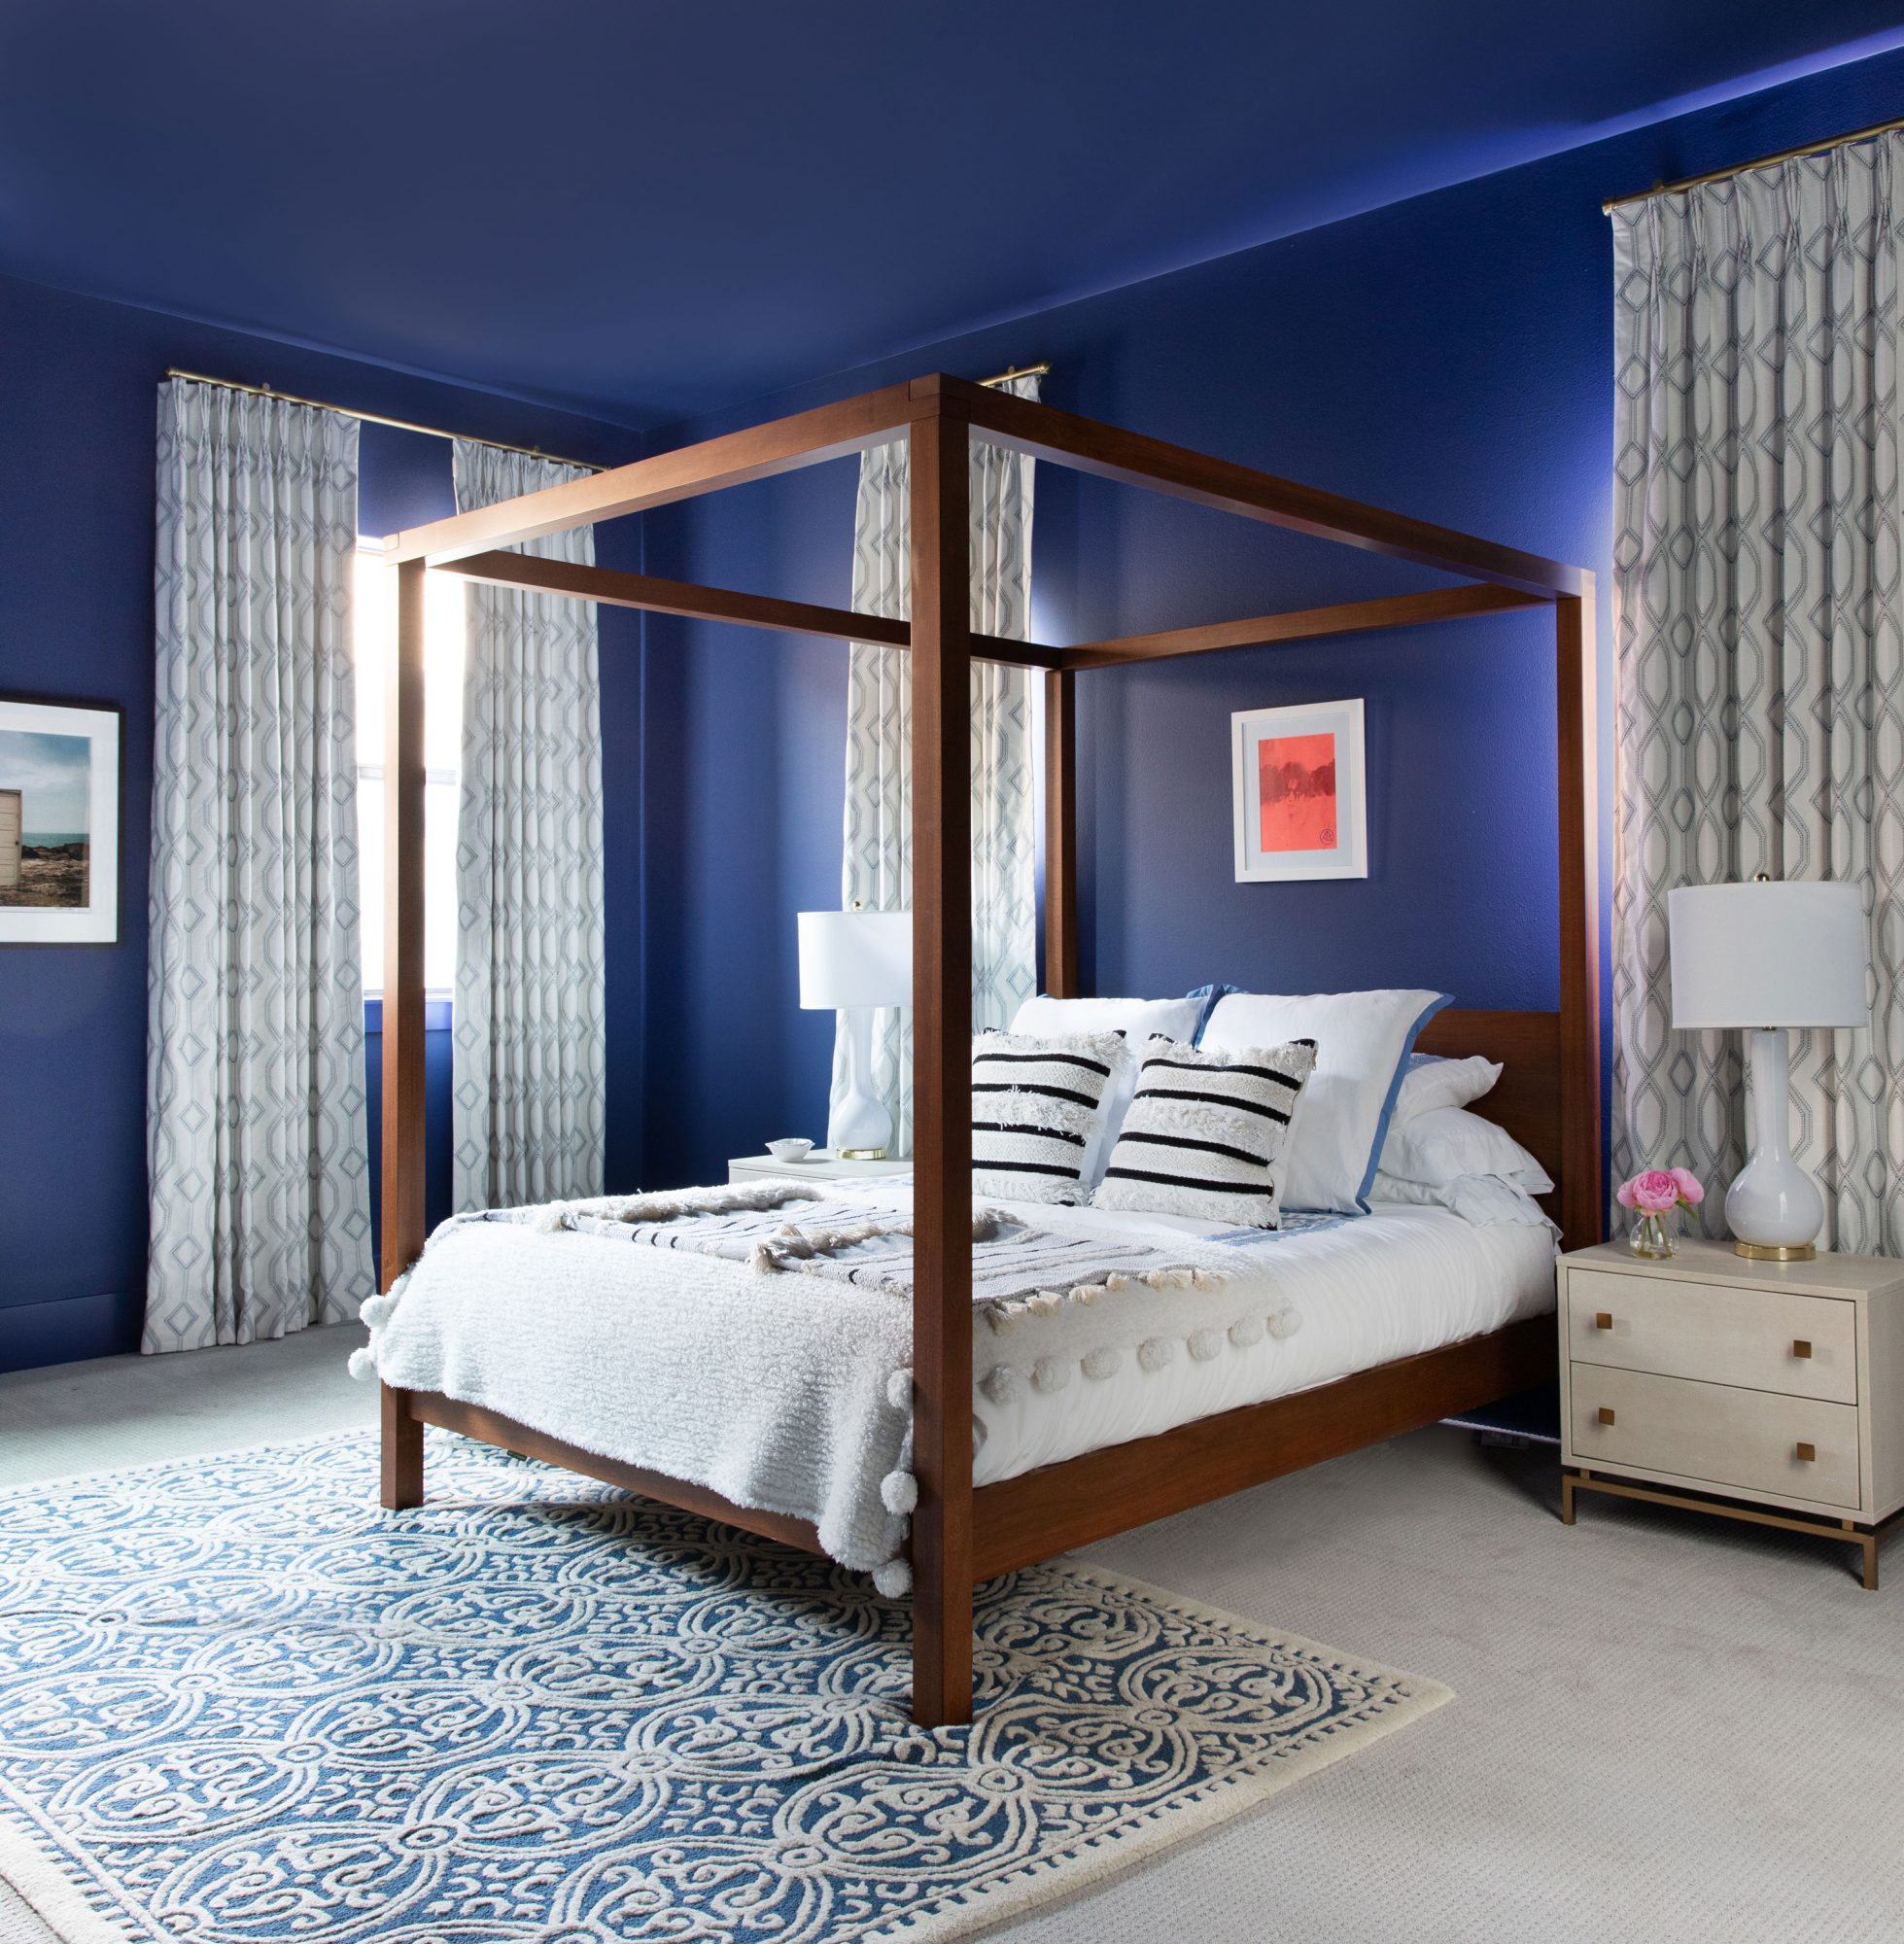 Four-poster bed in a deep blue room